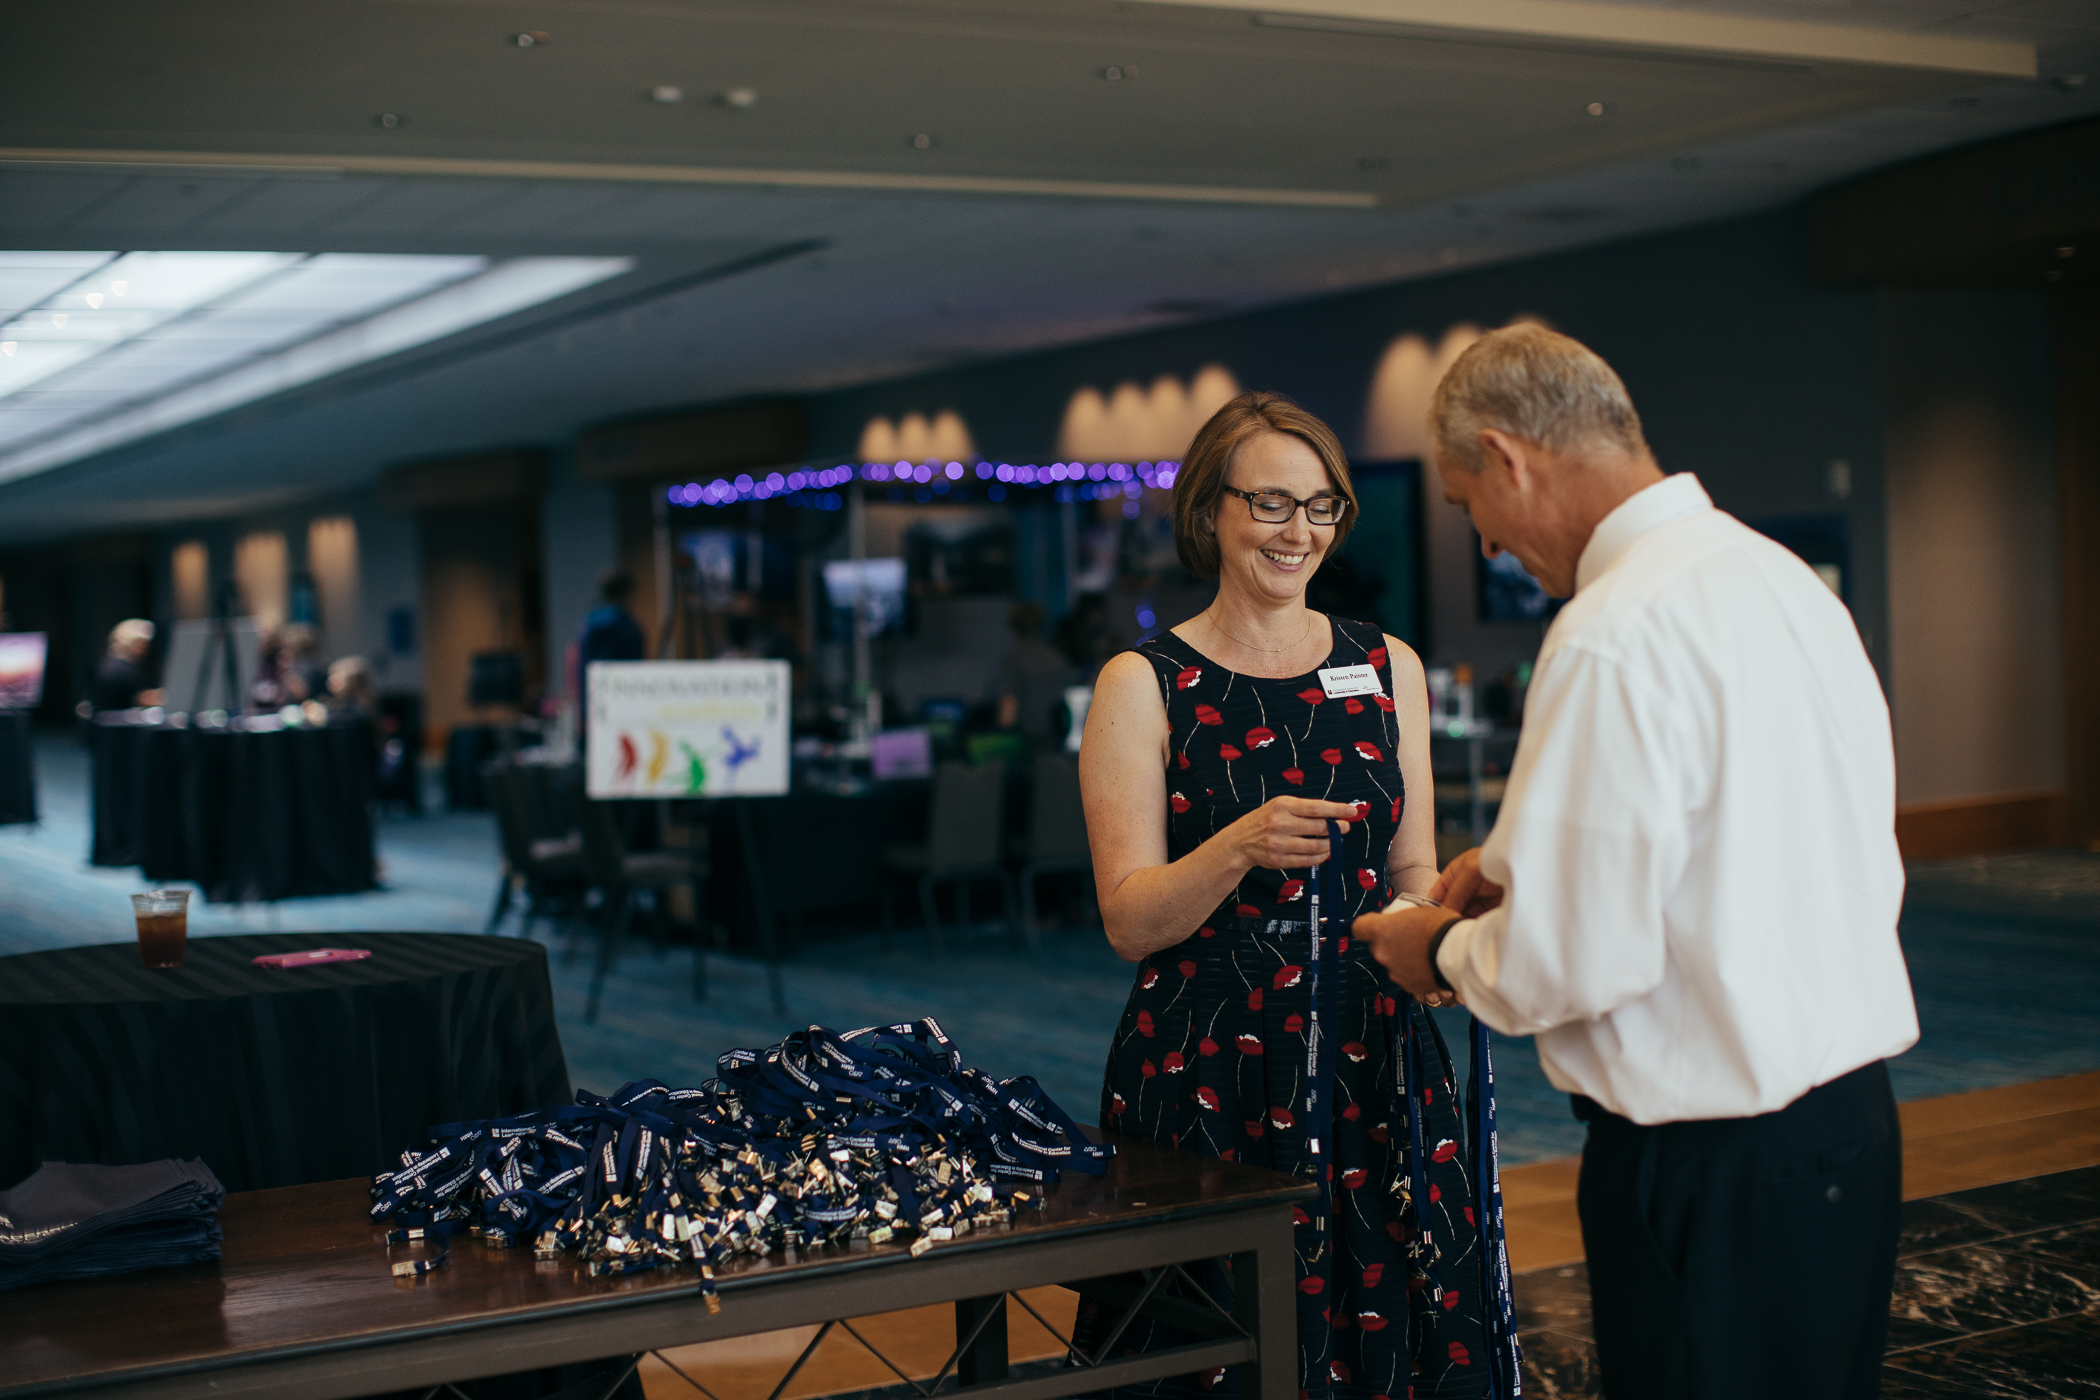 live event commercial photography brand storytelling for education florida conference photographer ©2018abigailbobophotography-8.jpg